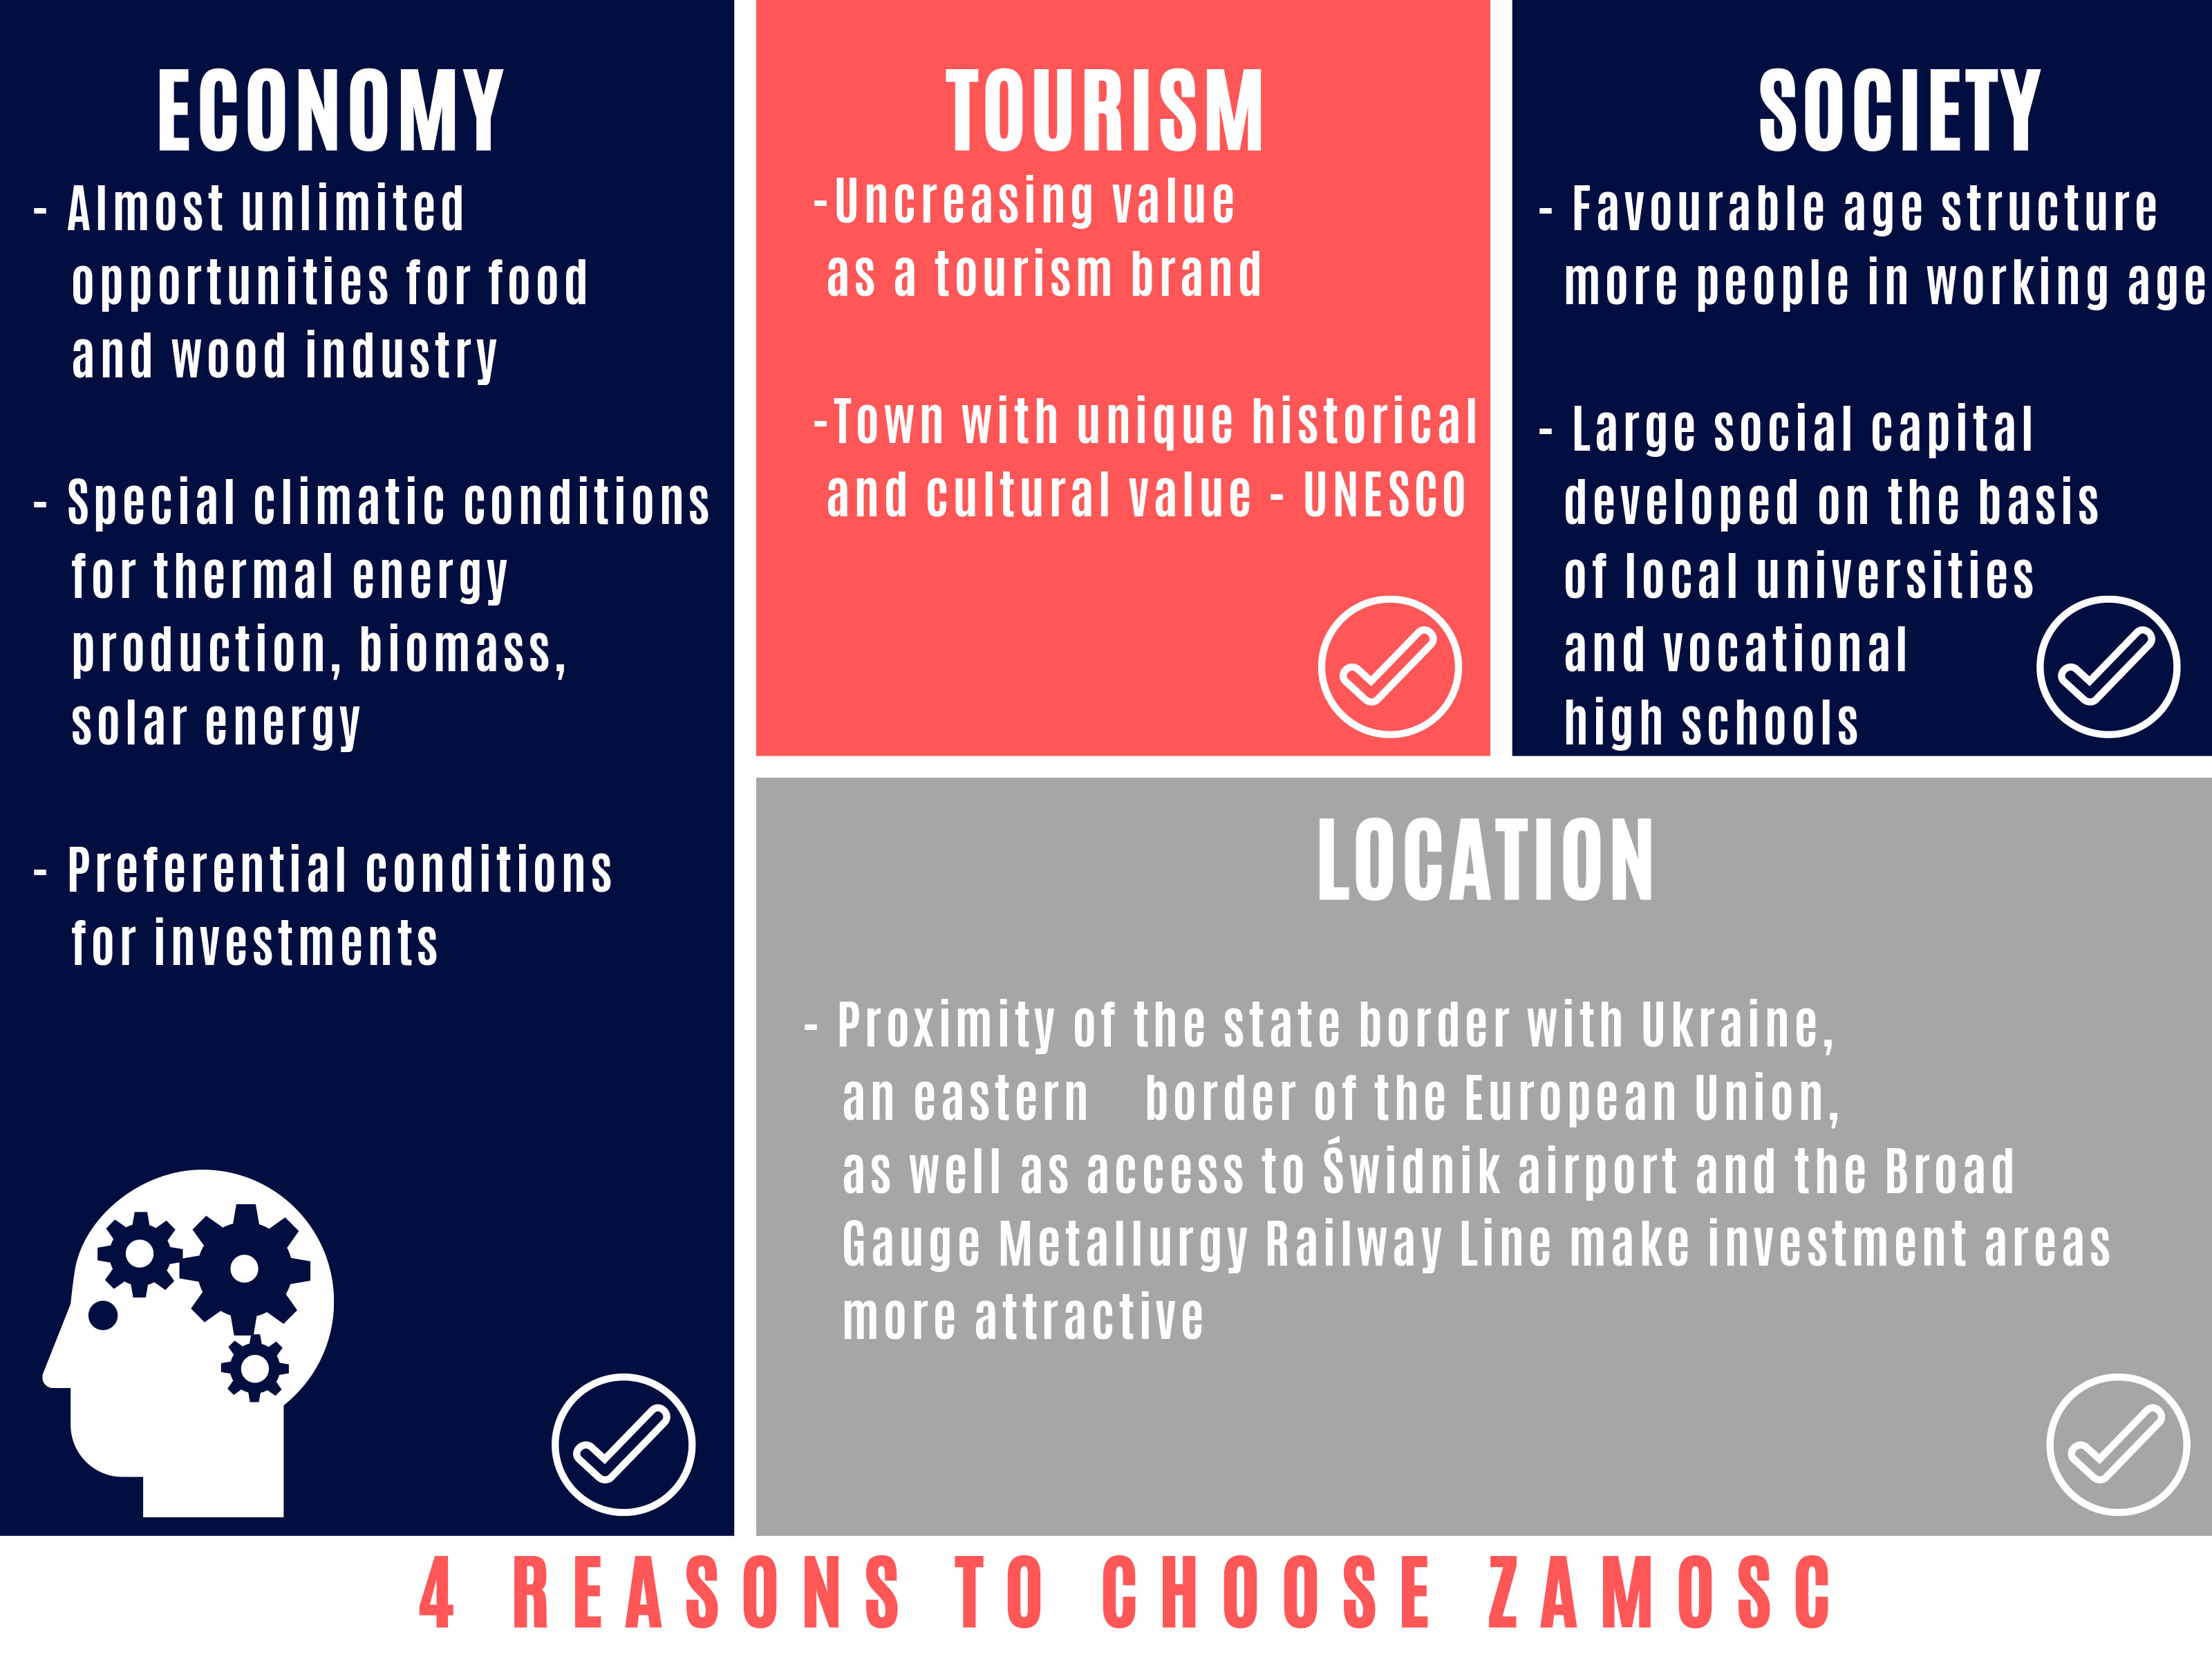 FOUR REASONS TO CHOOSE ZAMOSC